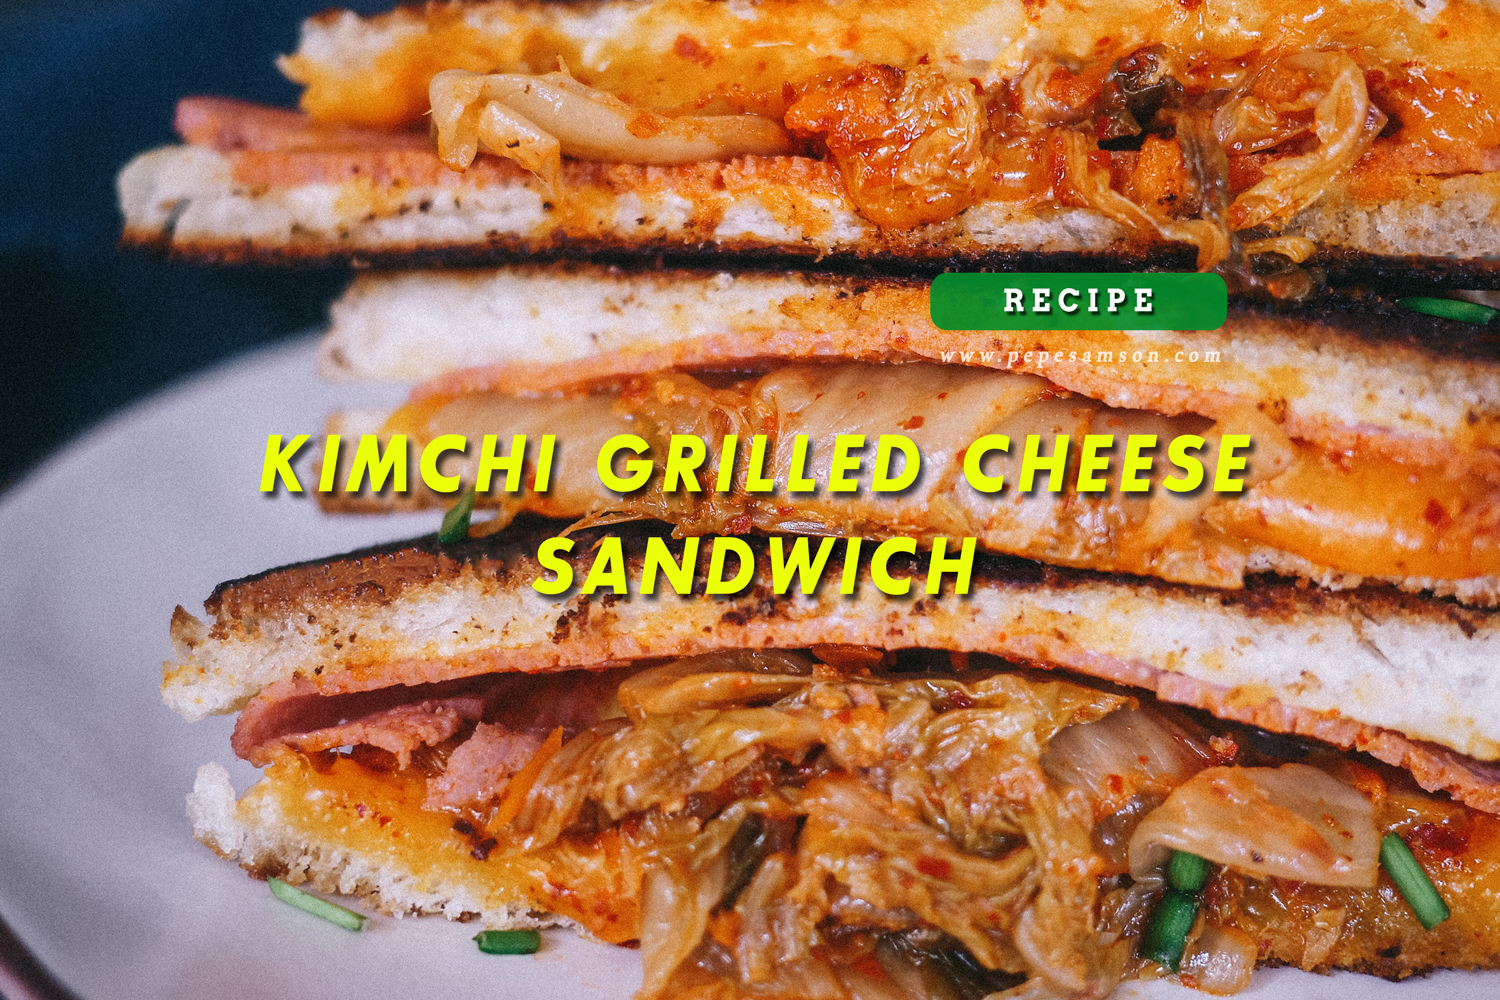 Recipe: Kimchi Grilled Cheese Sandwich